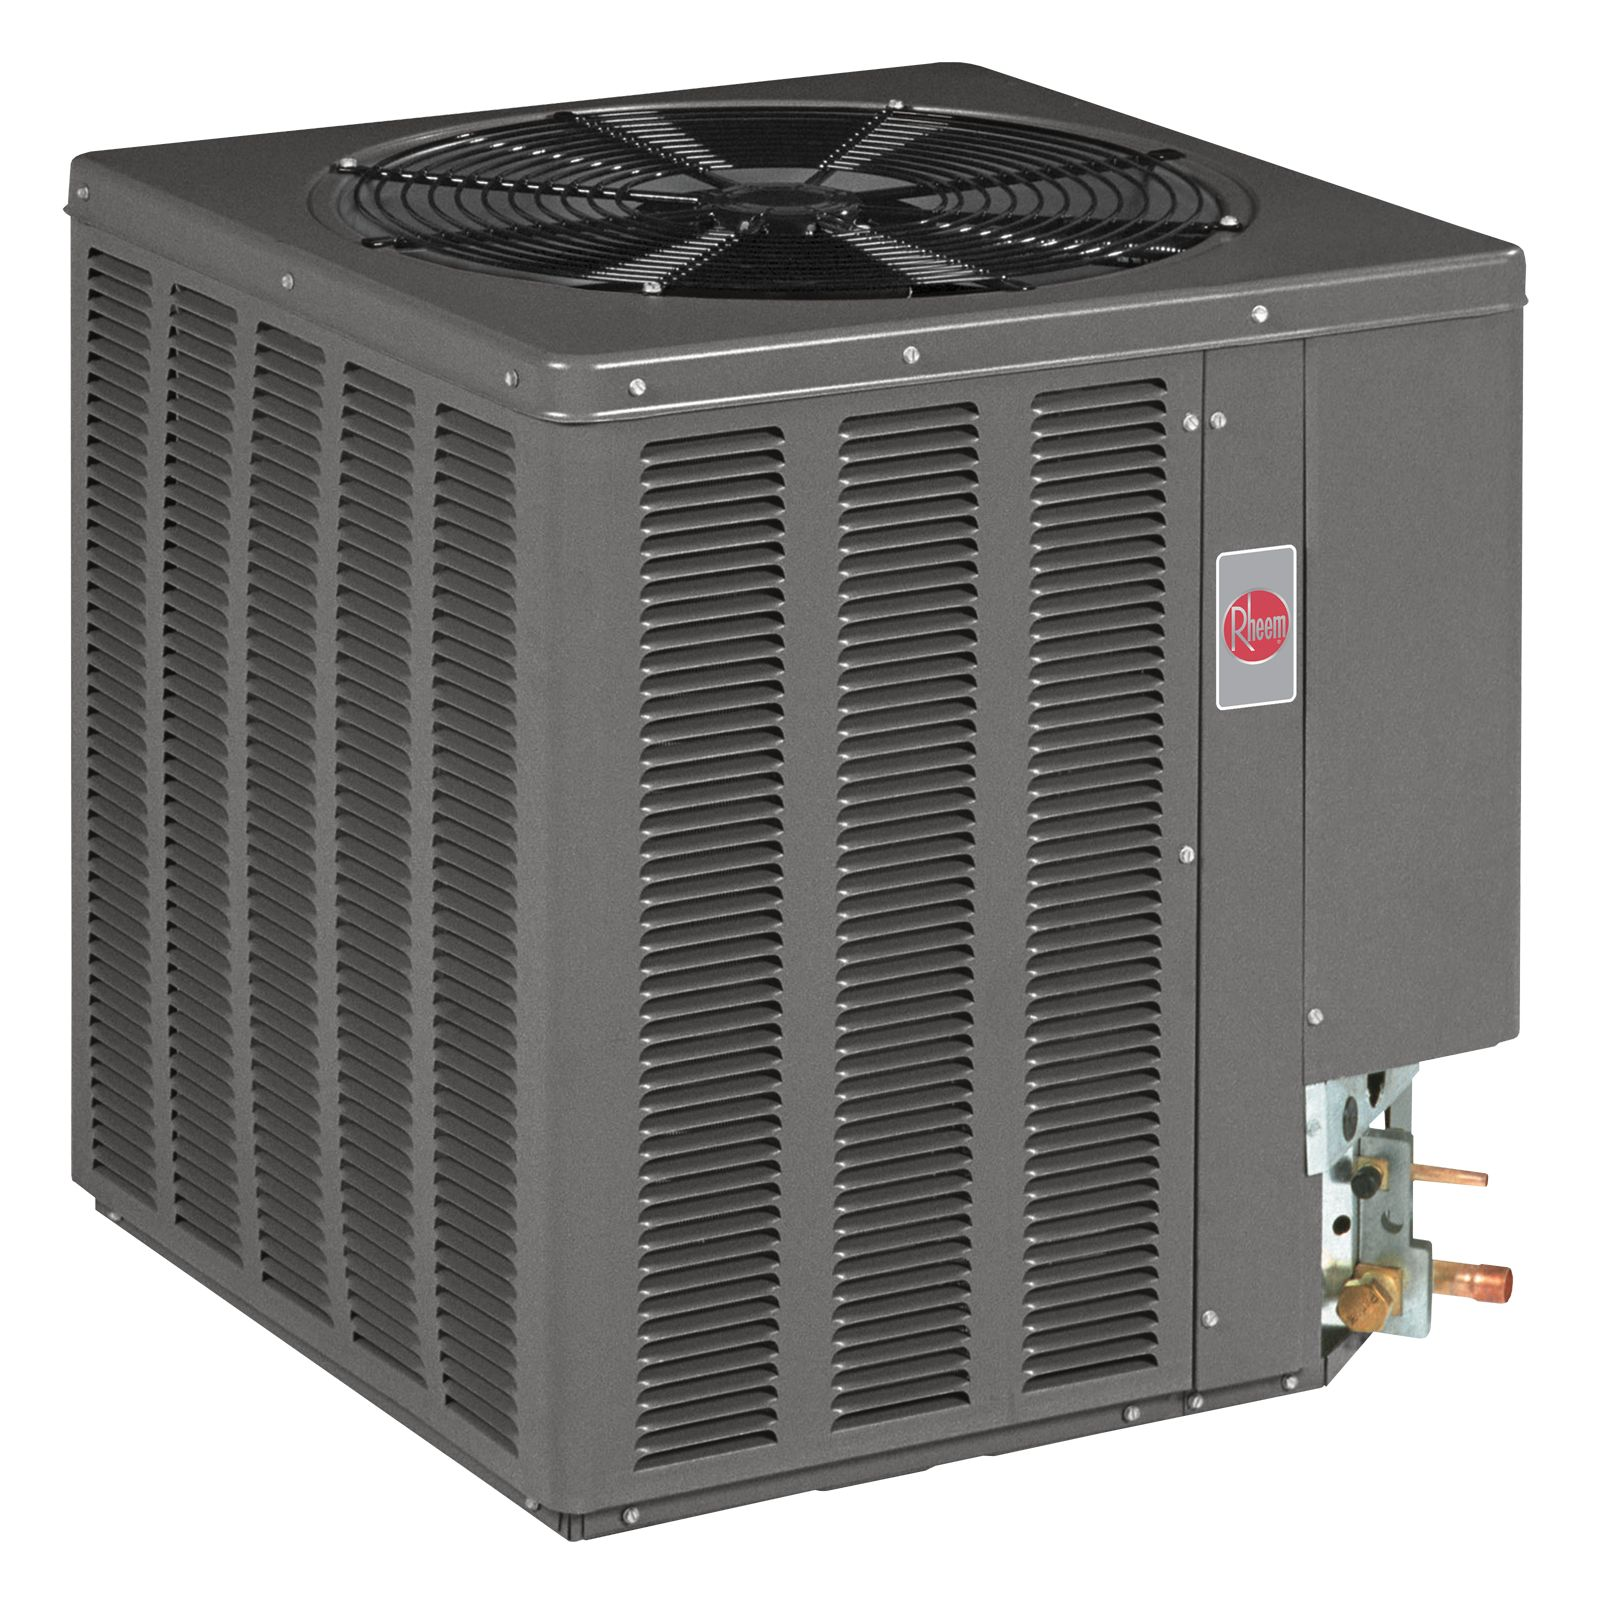 Rheem 16AJL60A01 - Value Series 5 Ton, 16 SEER, R410A Two-Stage Air Conditioner Condenser